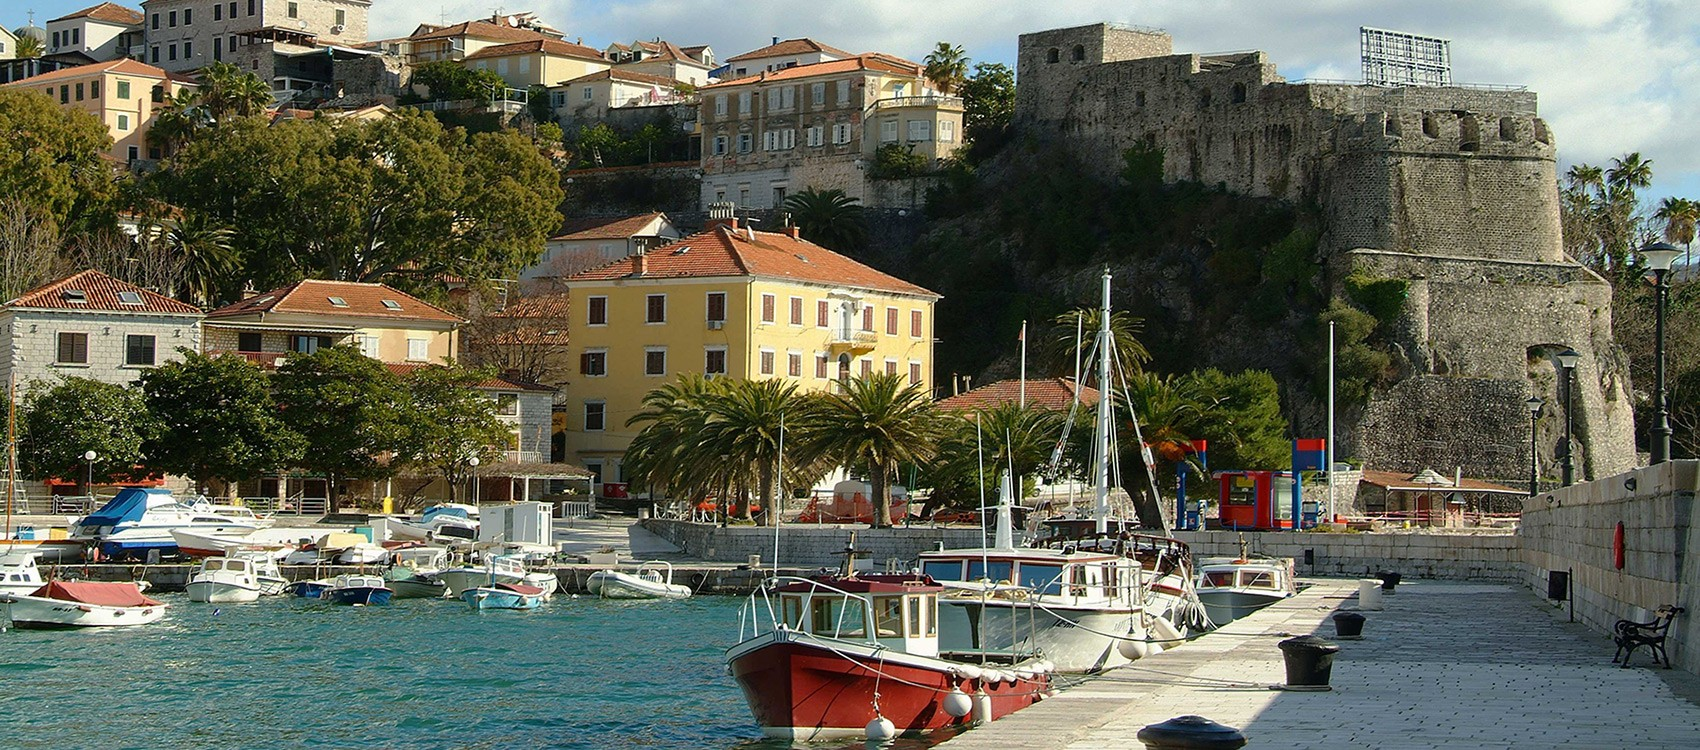 Why Visit Montenegro? A Guide to Where to Go in Montenegro & Things to Do